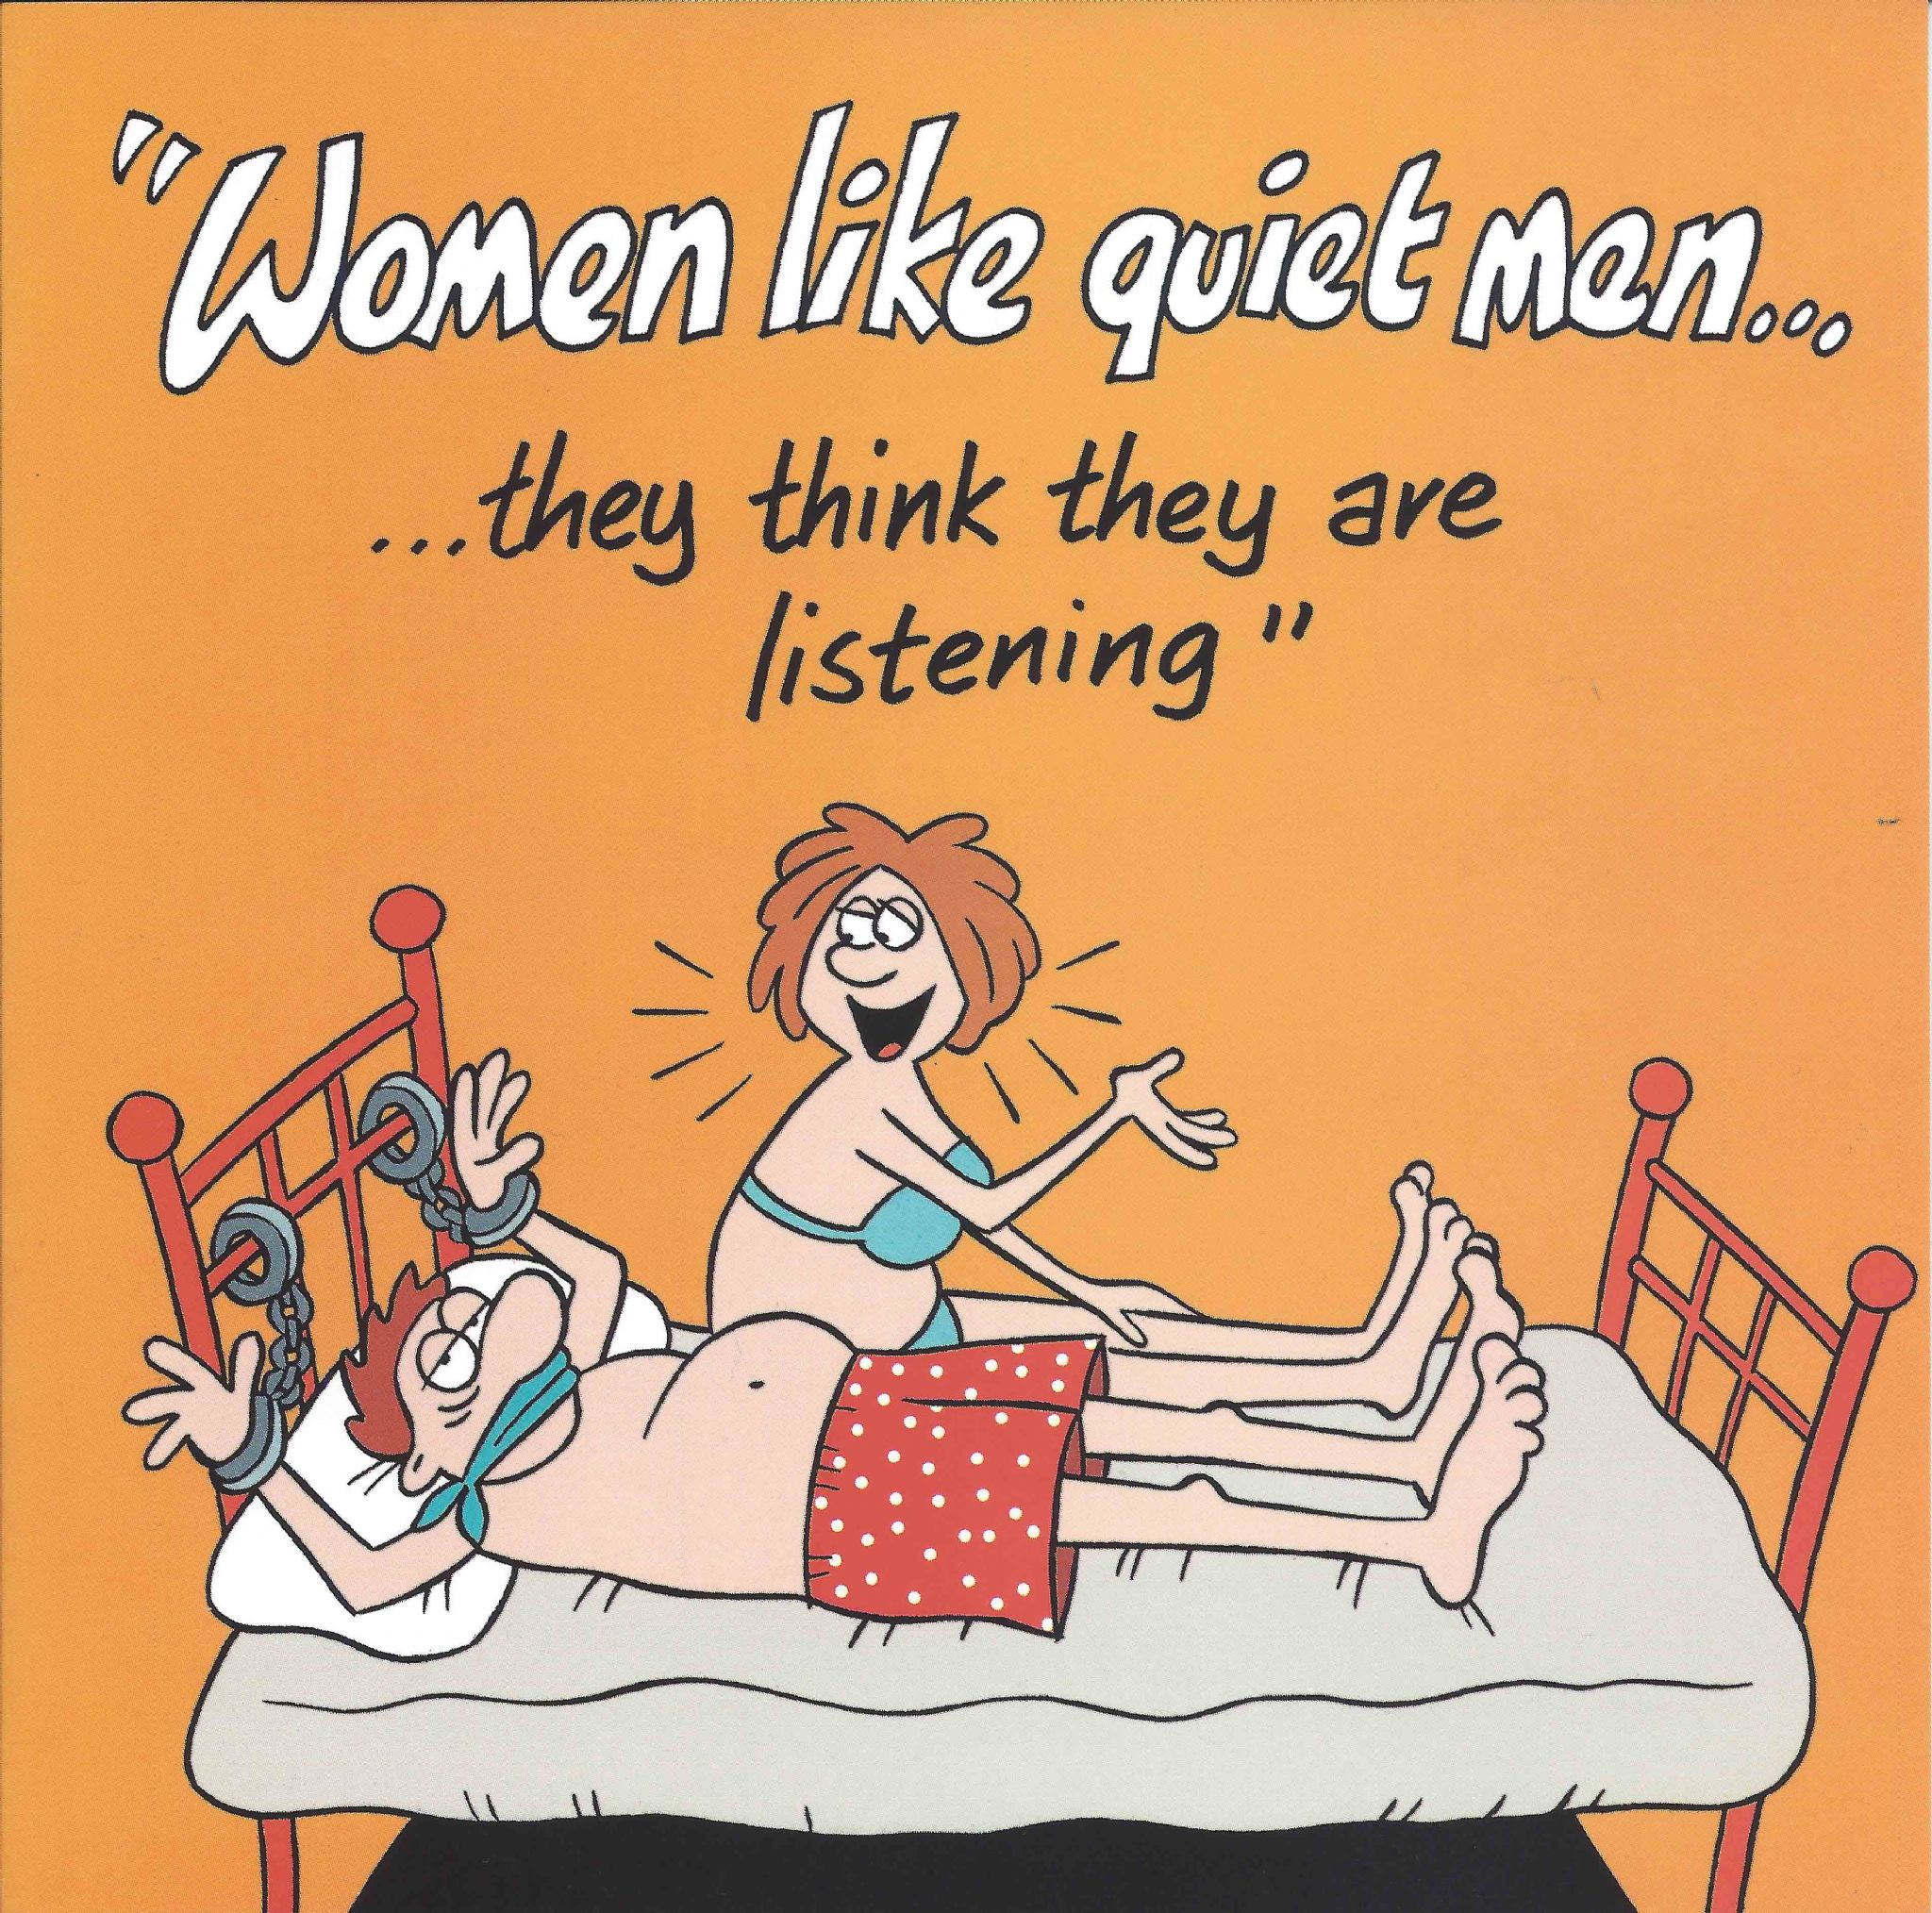 Funny Birthday Cards For Men.Women Like Quiet Men Funny Card Tw529